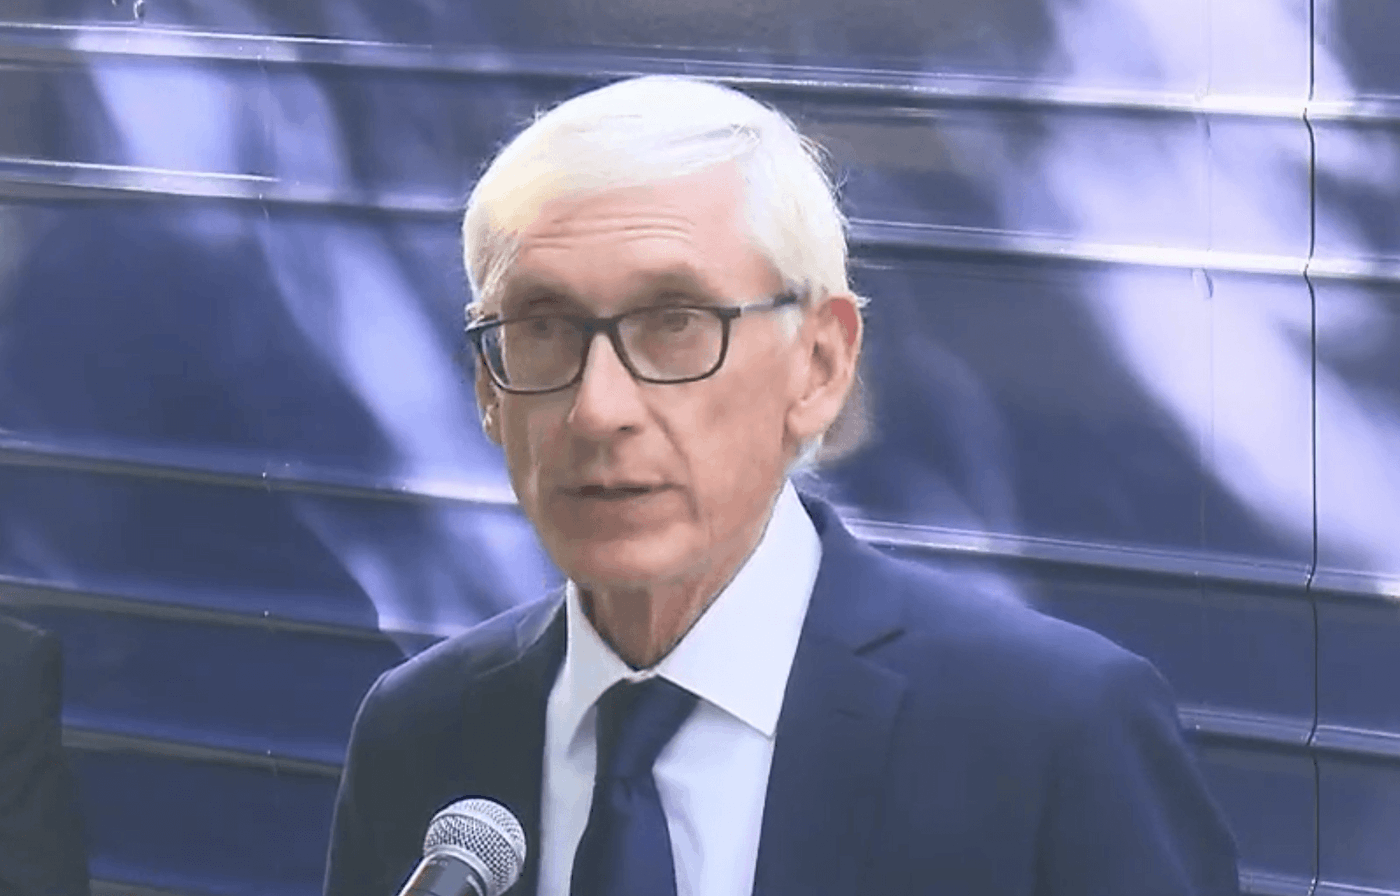 """Gov. Tony Evers, speaking during an event hosted by the Democratic Party to promote President Joe Biden's agenda, said Republicans are spreading """"dog whistle crap"""" when they raise baseless concerns about whether Afghan refugees are being vetted before coming to Fort McCoy. (Screenshot via WisEye)"""